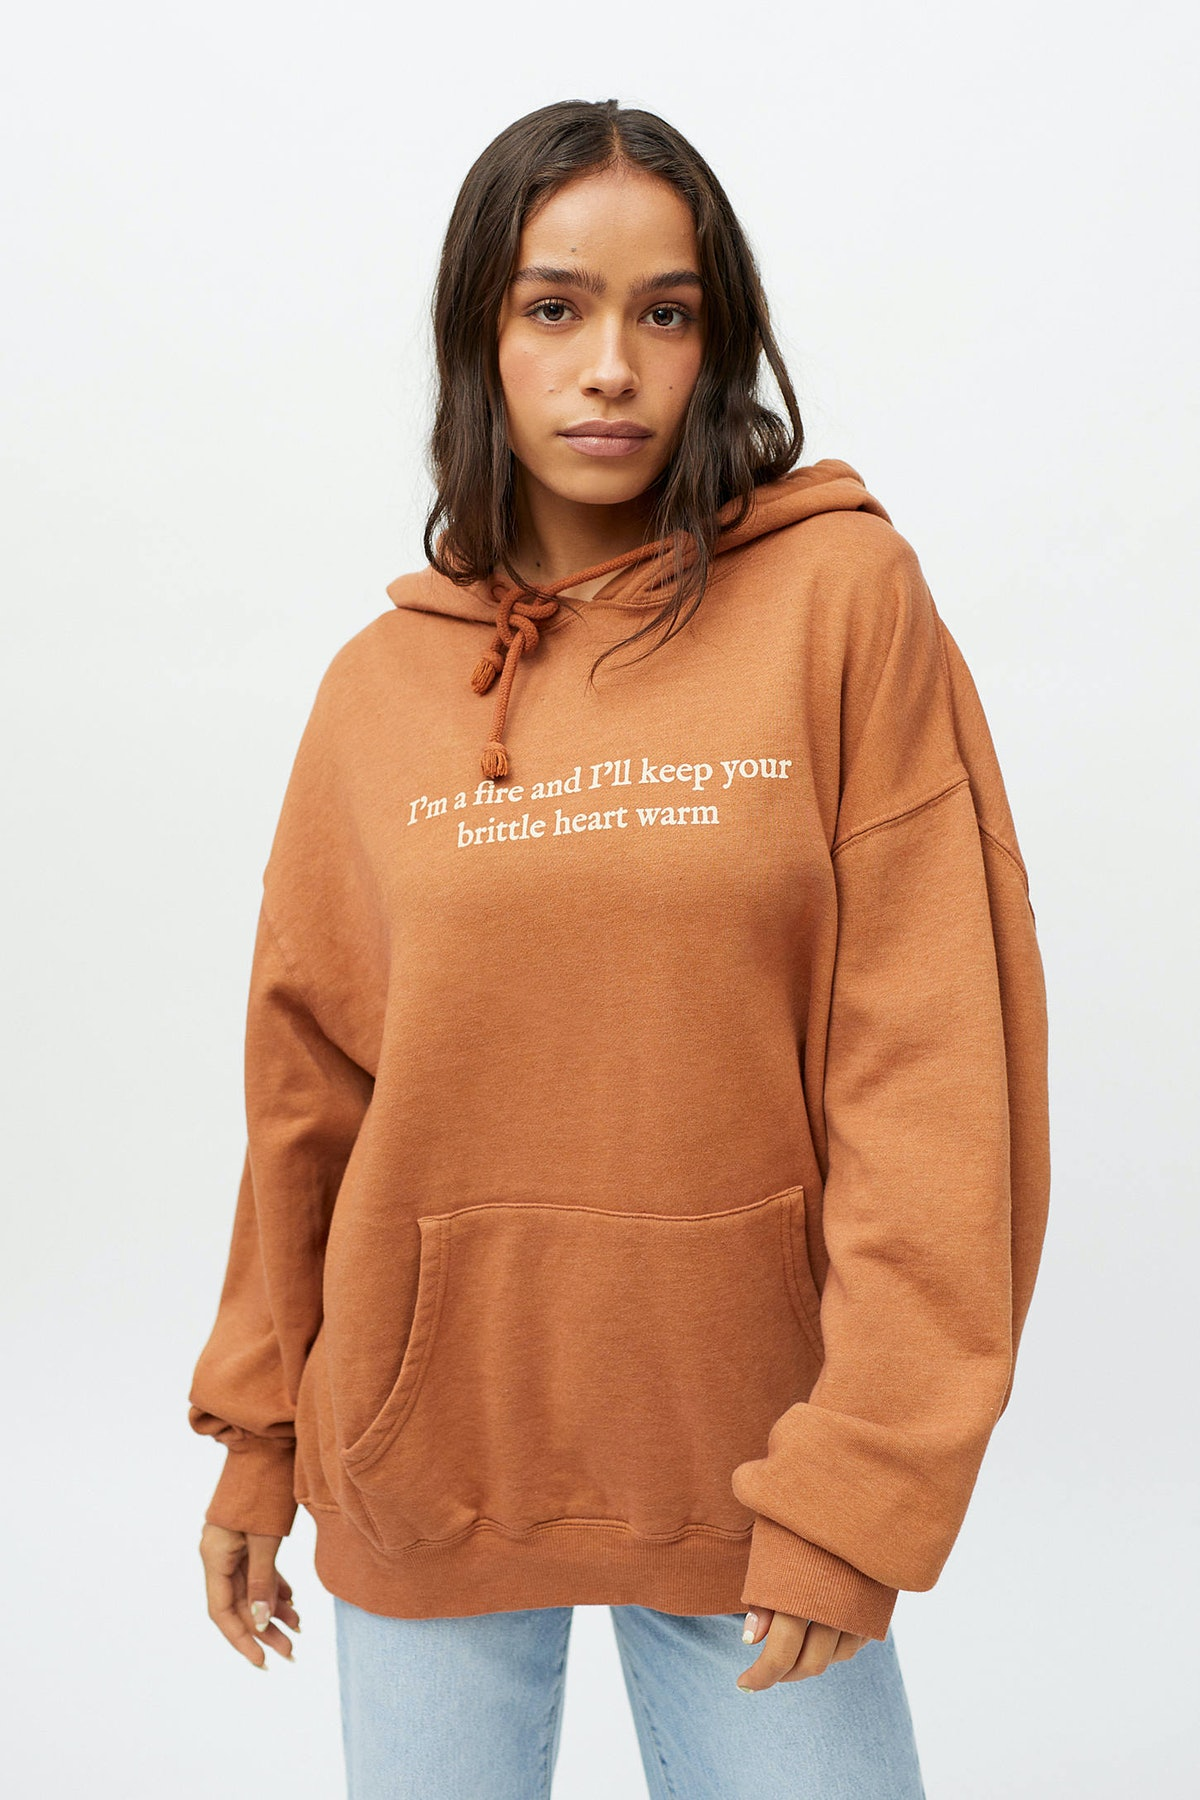 Taylor Swift Folklore Anniversary Collection UO Exclusive Hoodie Sweatshirt